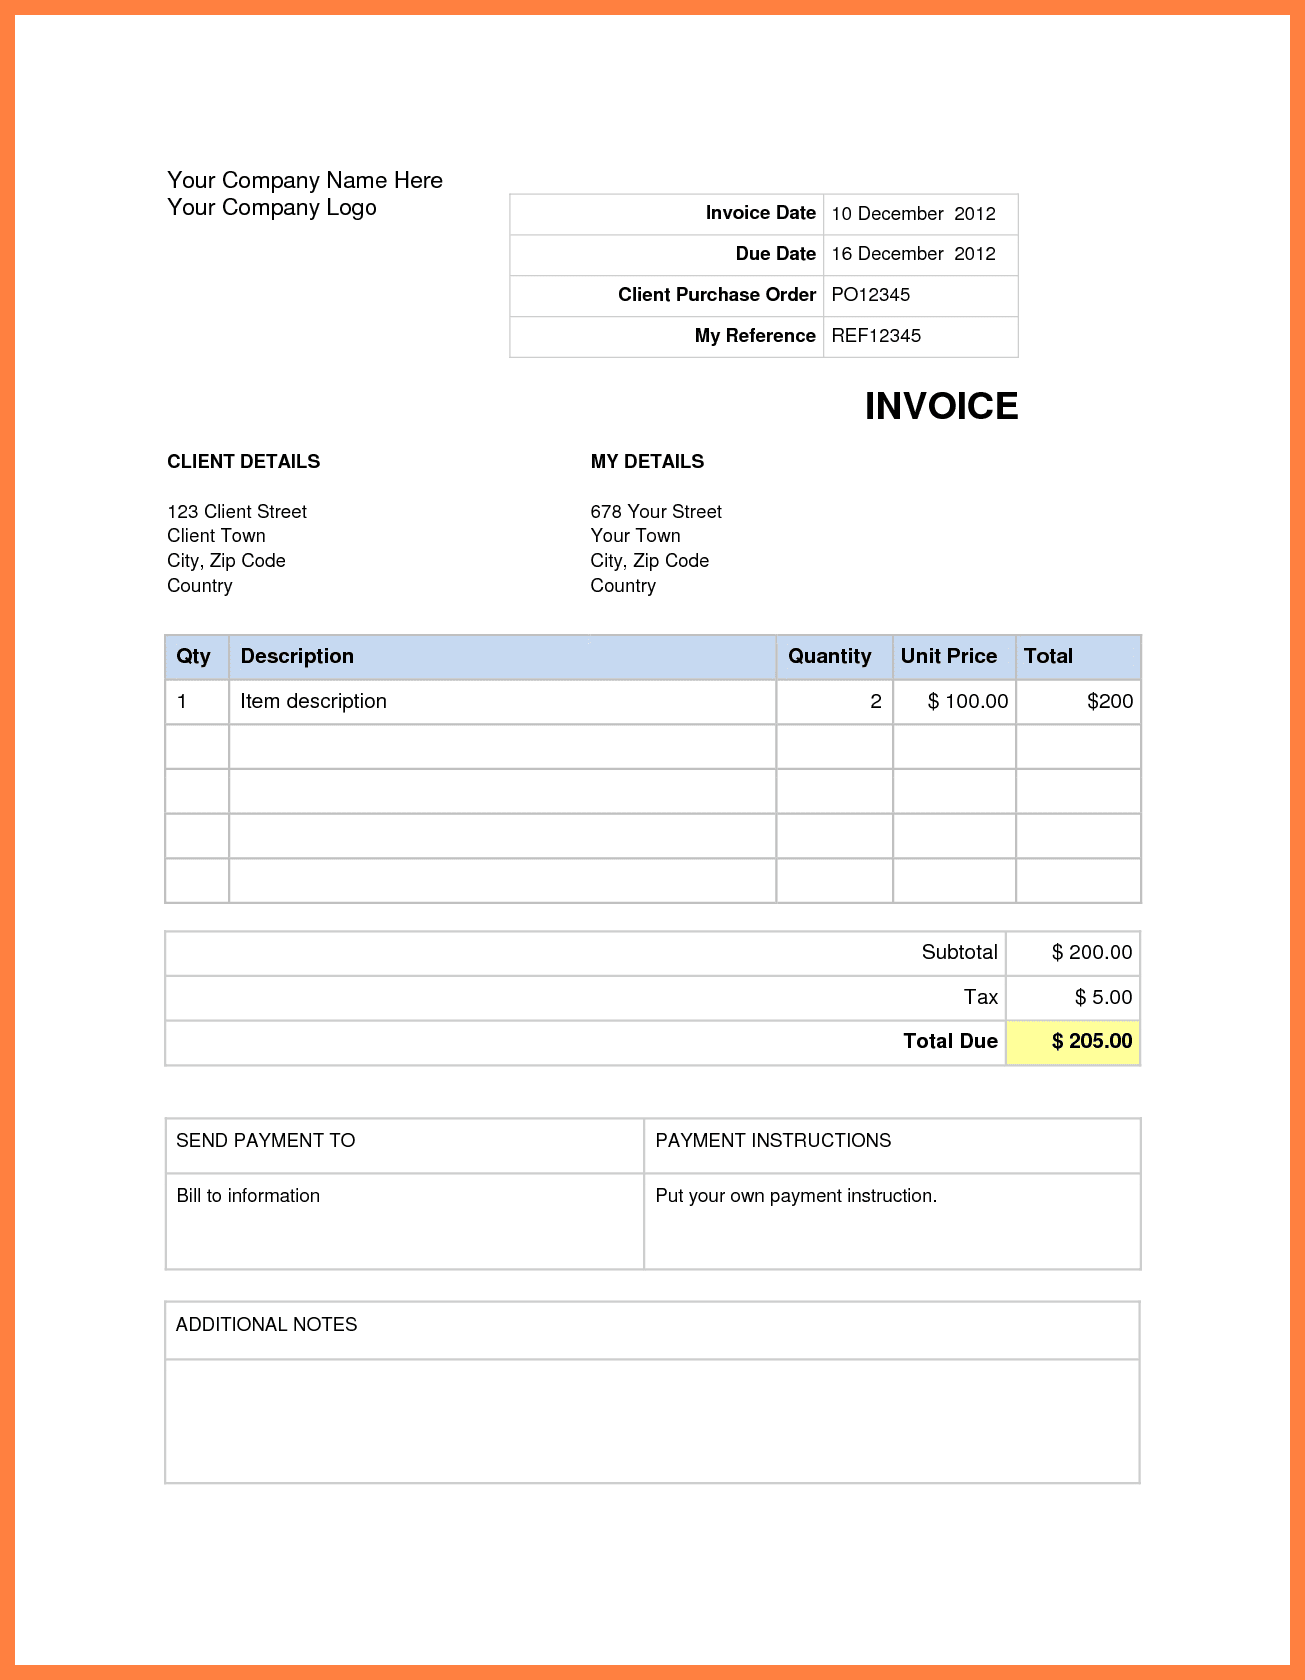 Microsoft Word 2010 Invoice Template